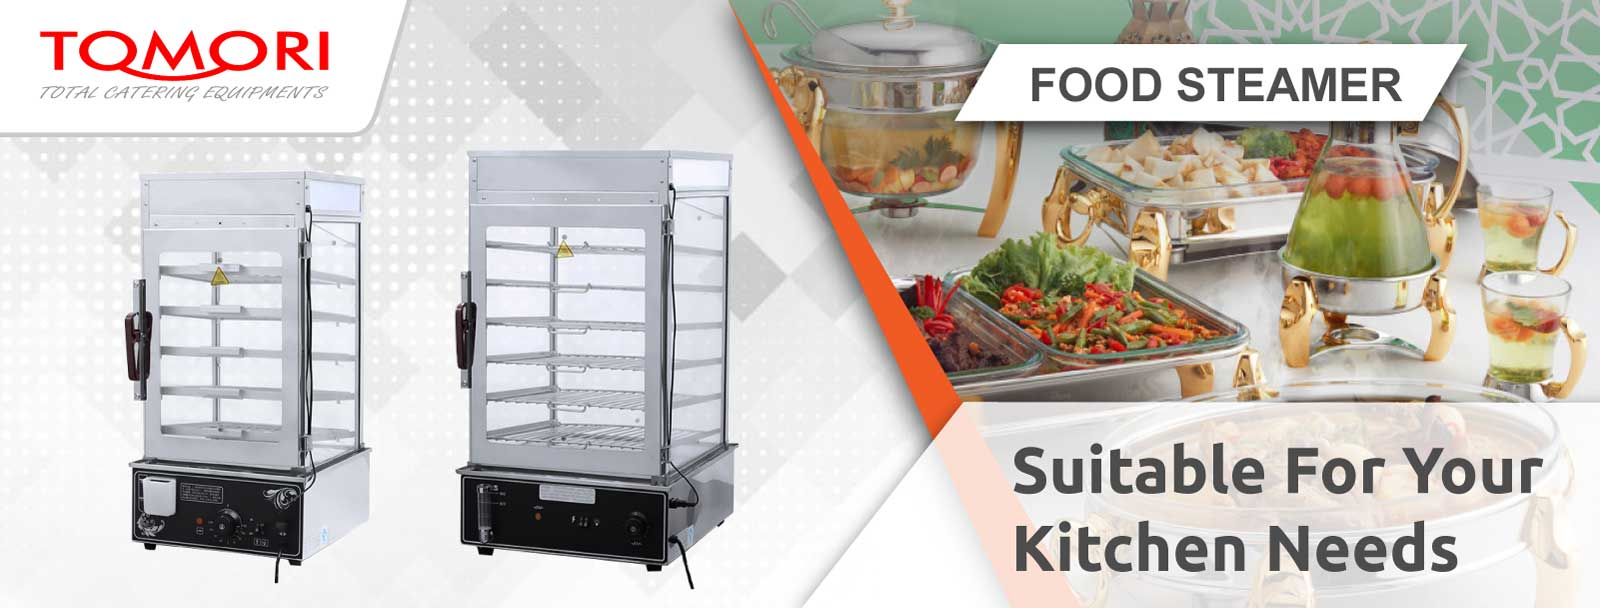 Jual Food Steamer